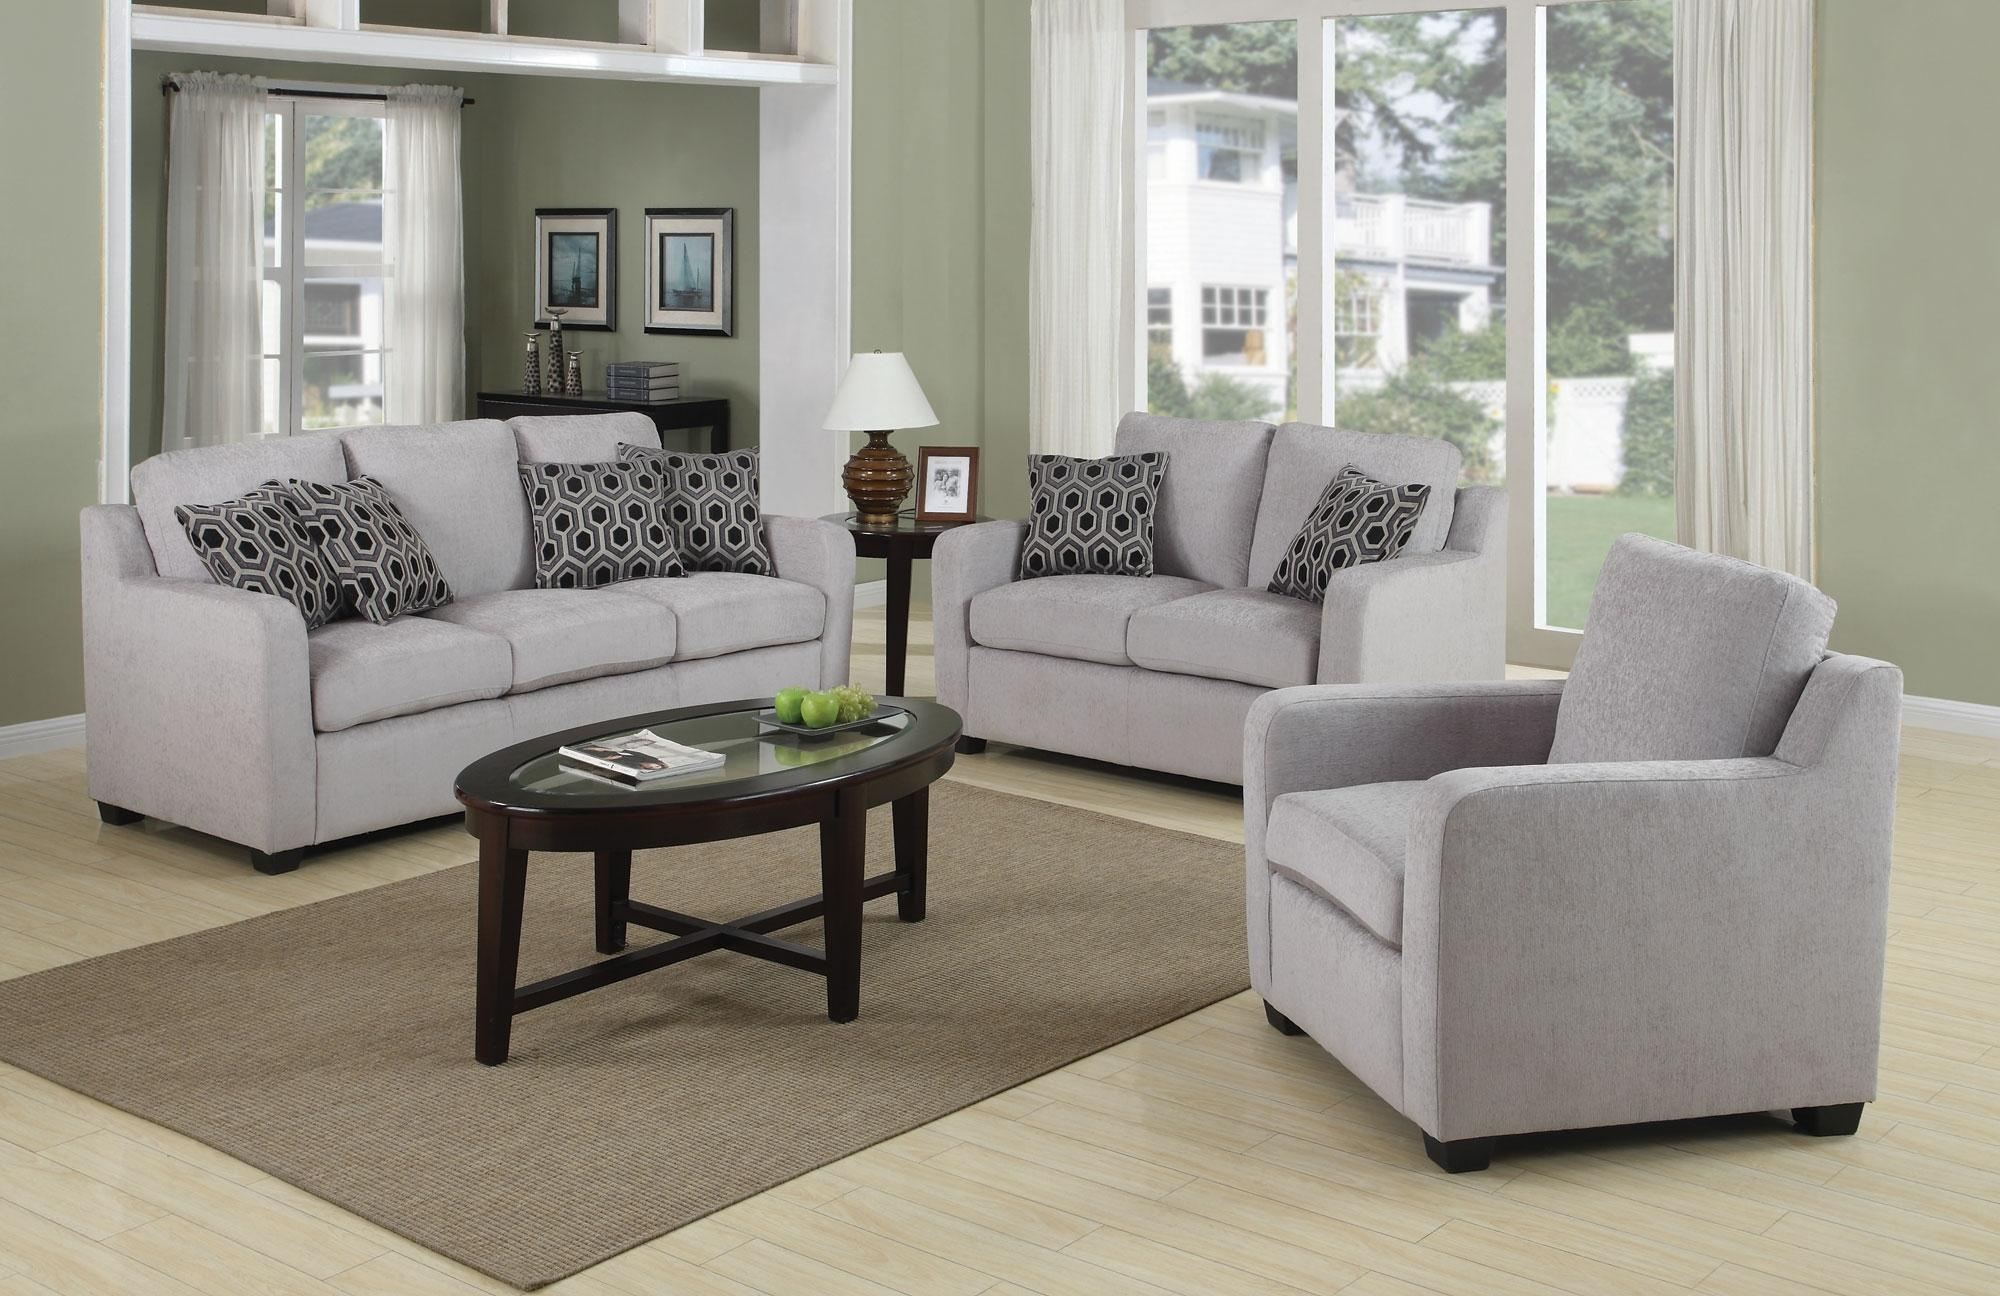 Living Room Furniture Sets Under 600